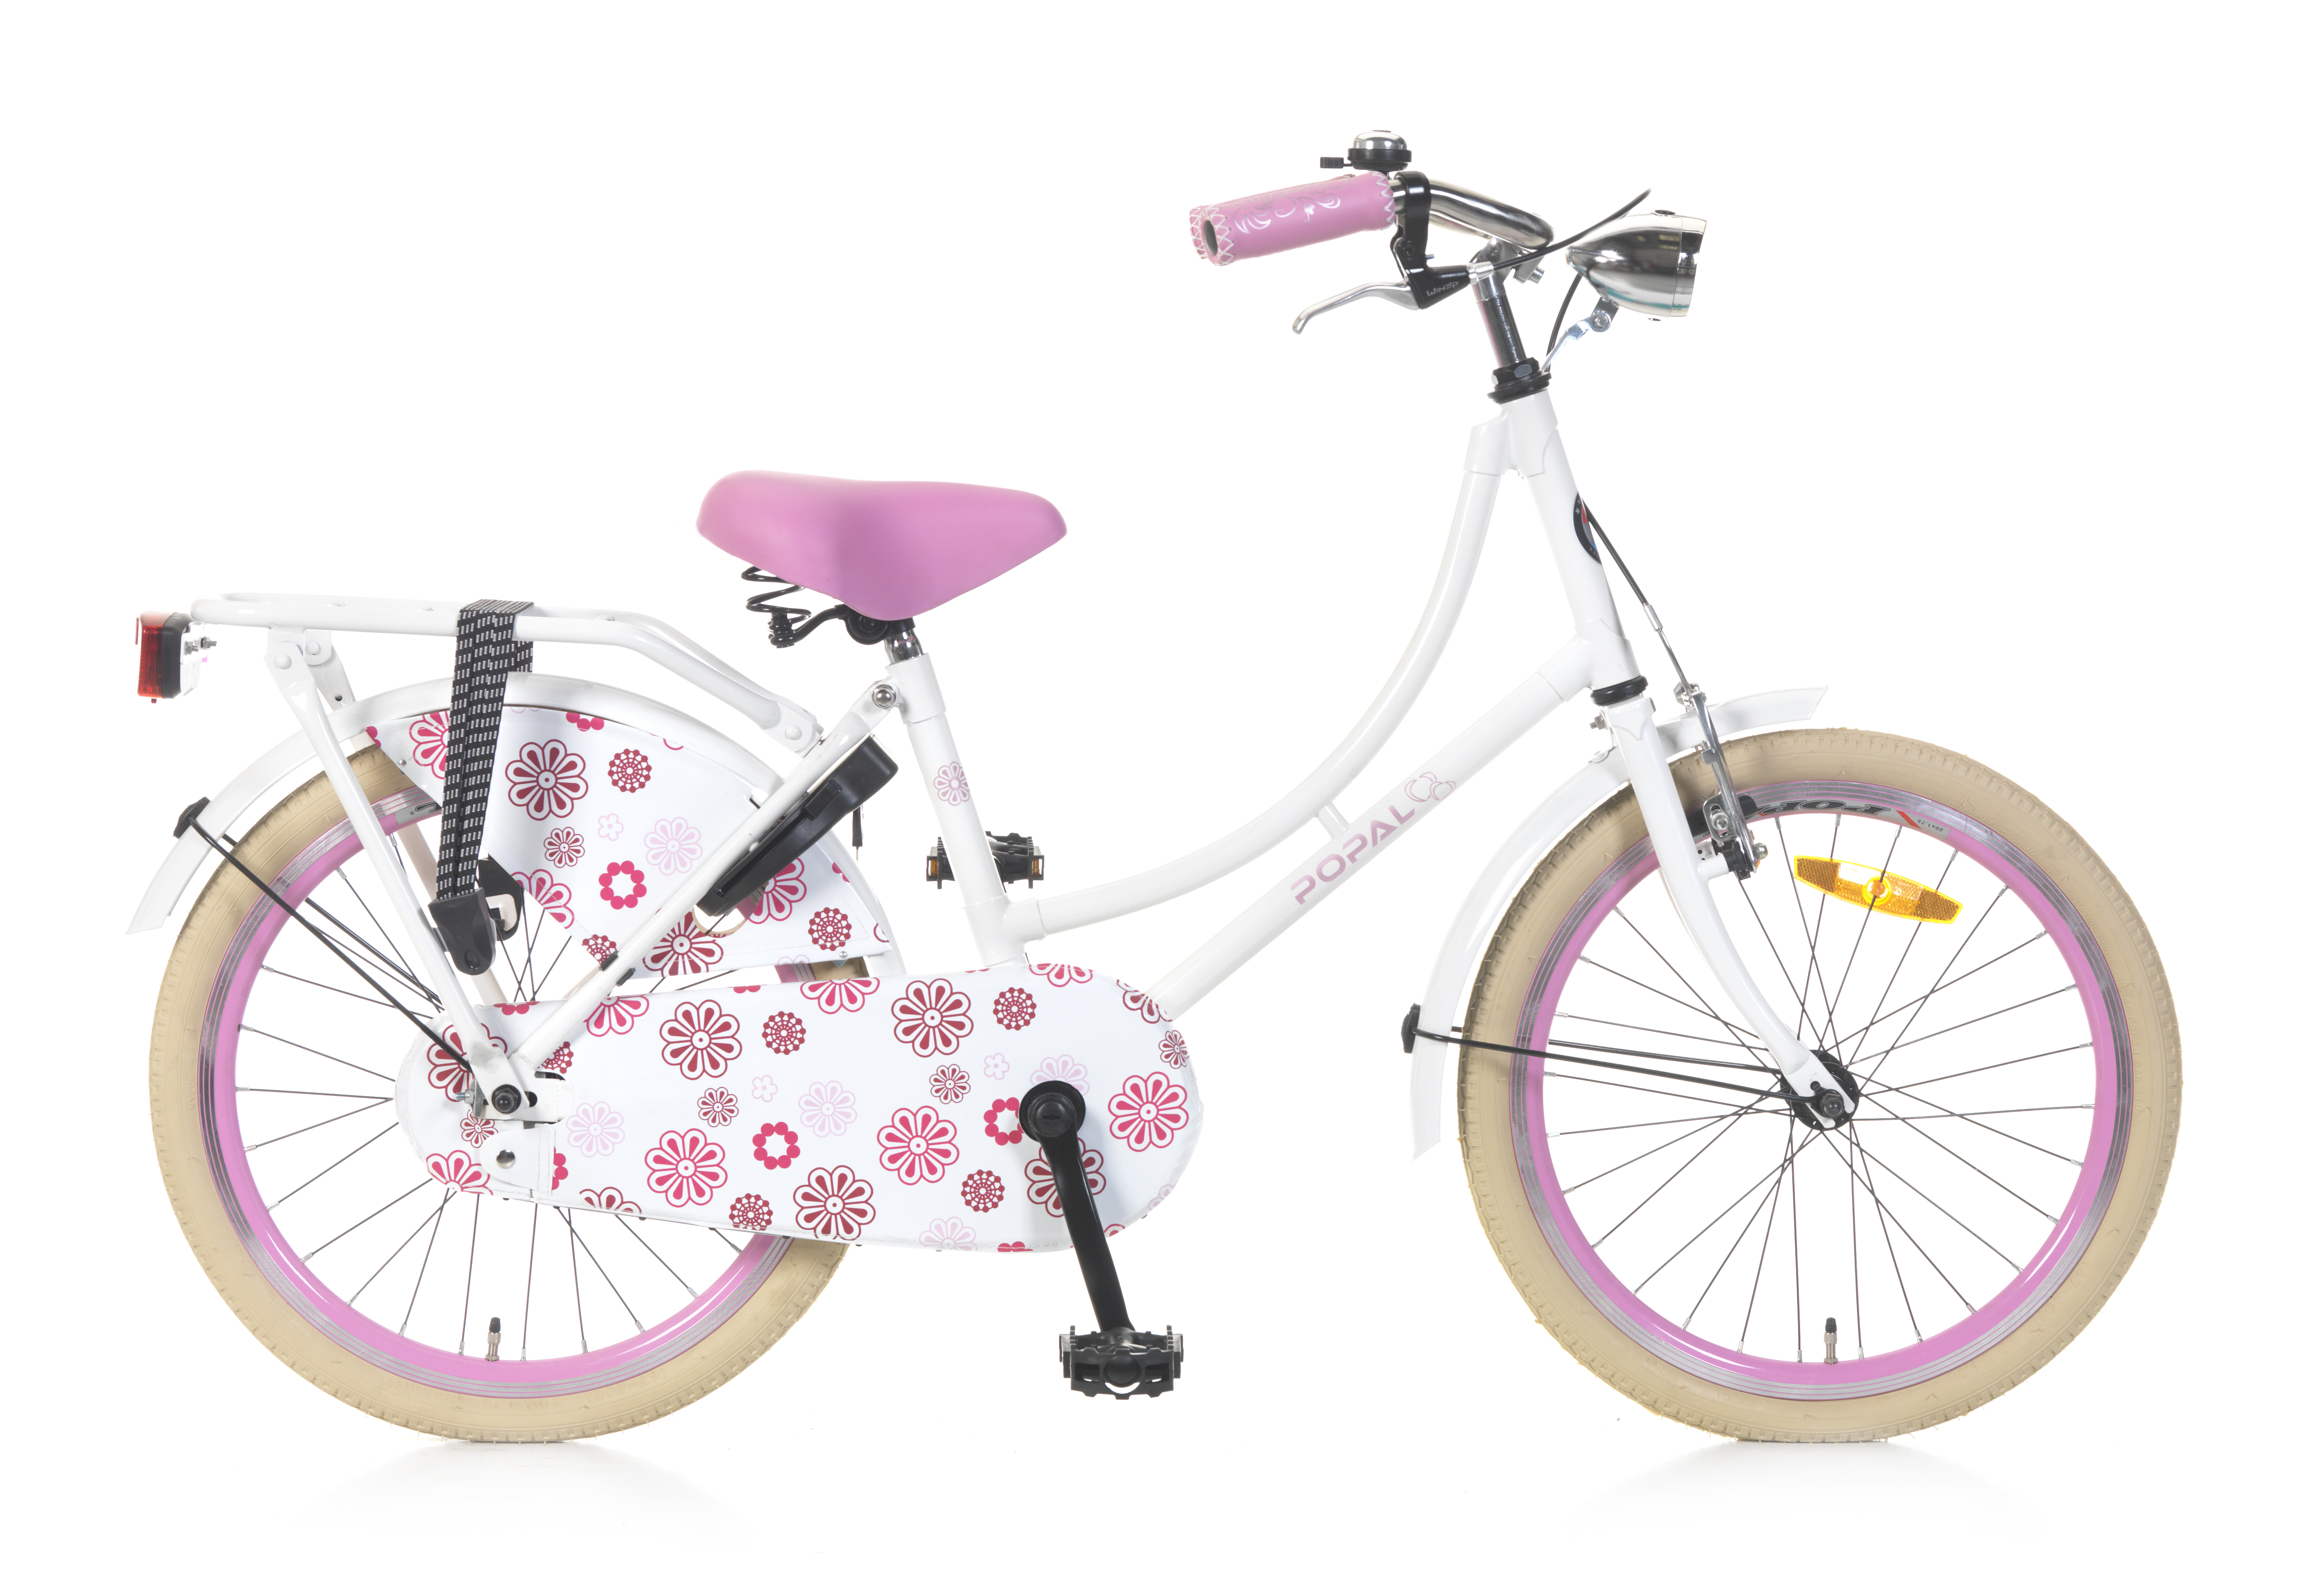 Omafiets 20 inch wit